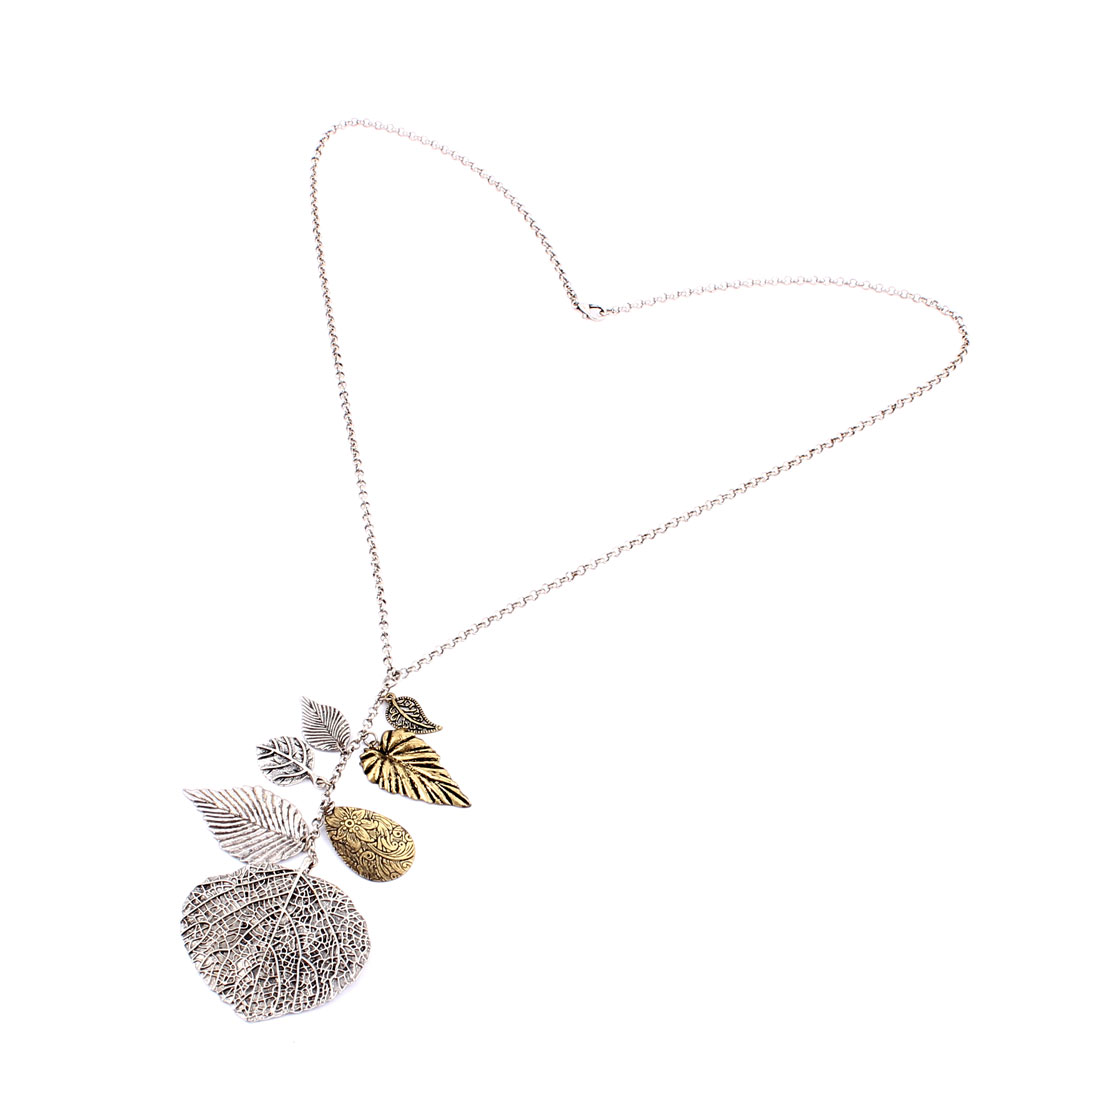 Silver Tone Metal Leaves Design Pendant Lobster Buckle Strip Link Chain Necklace Neckwear Collar for Ladies Women